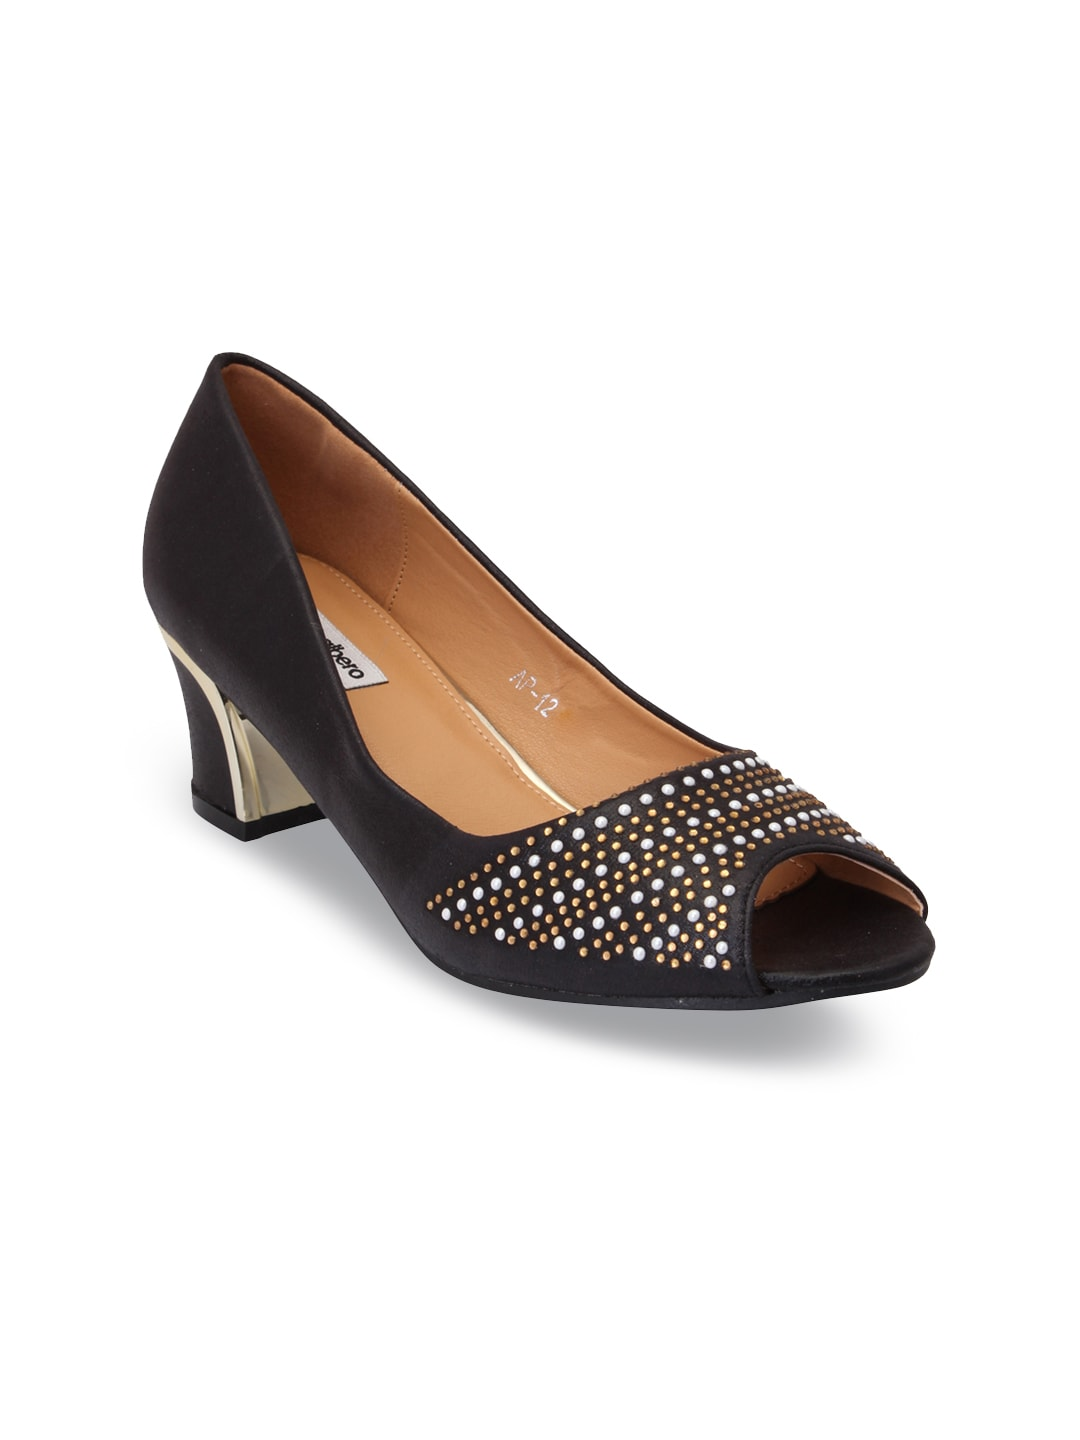 44e68146bee Buy Ginger By Lifestyle Women Black Solid Peep Toes - Heels for ...